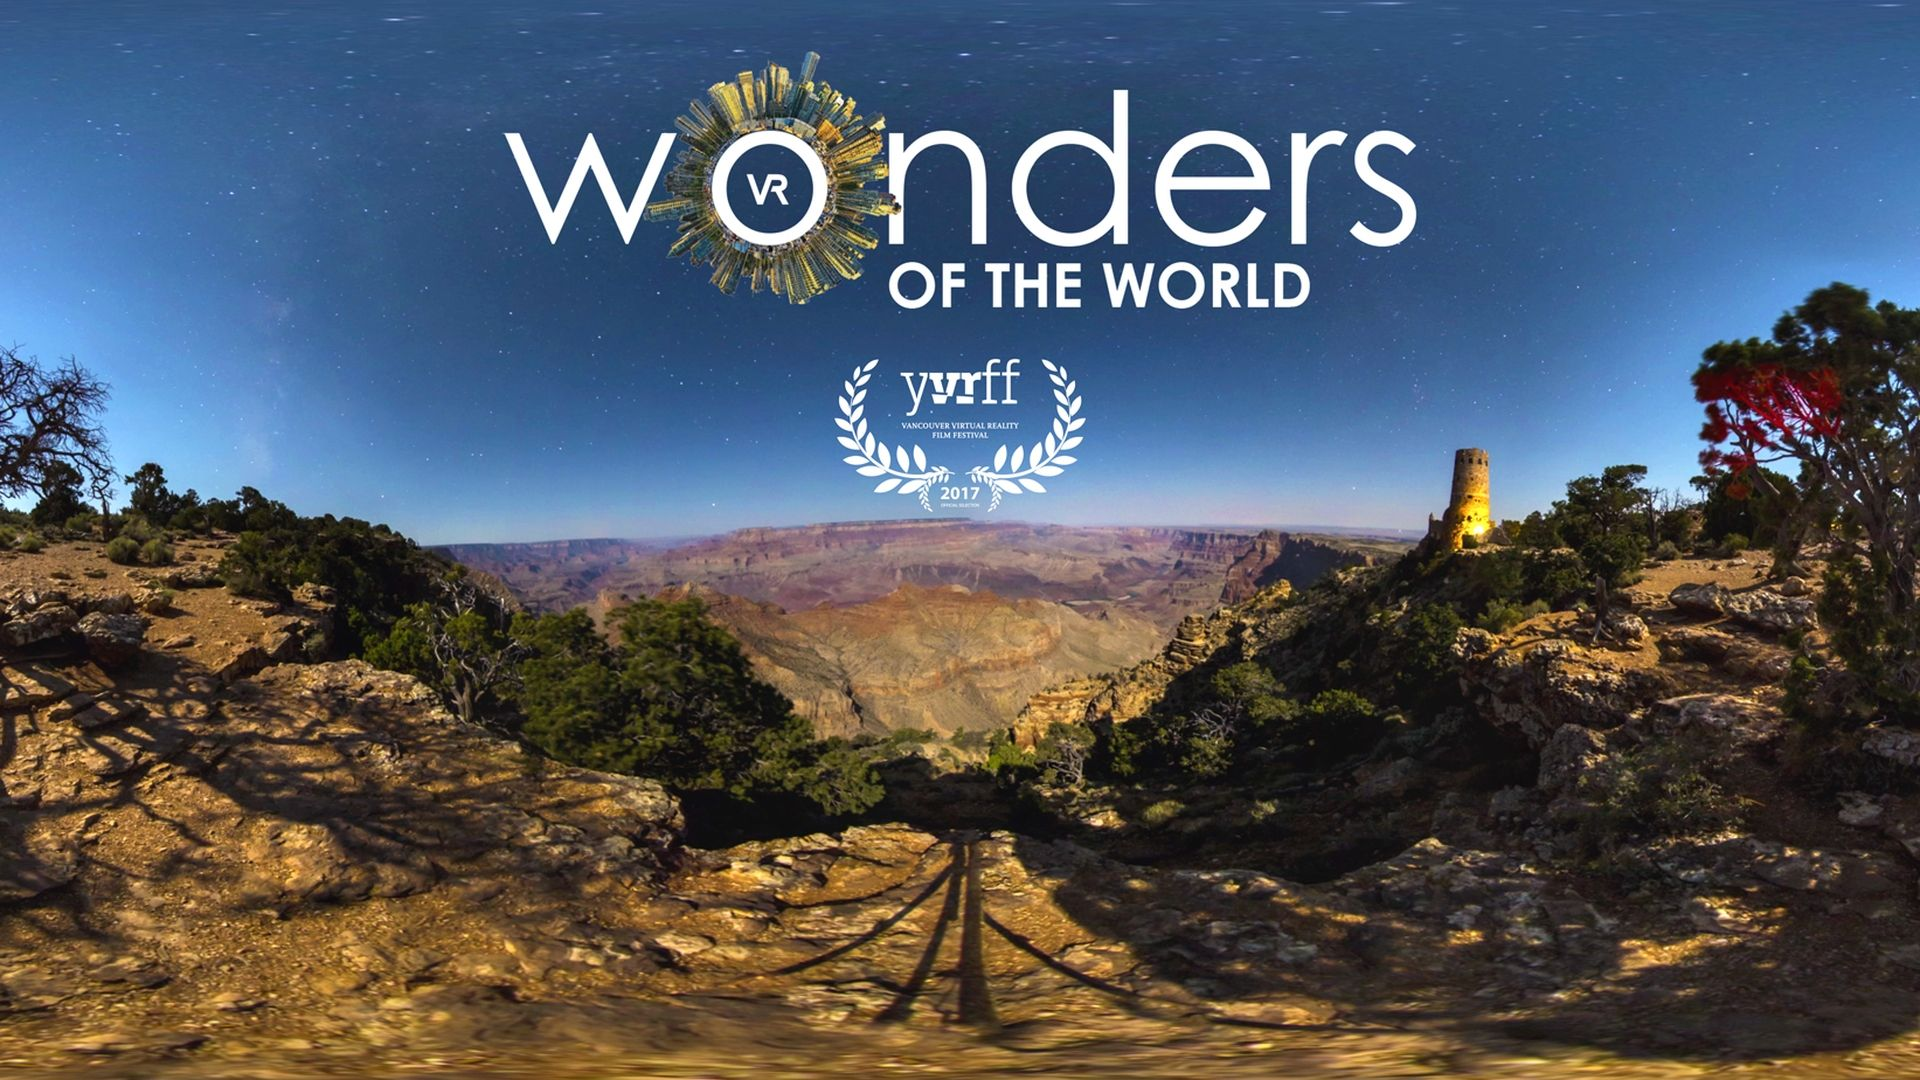 Wonders of the World Virtual Reality Film Poster